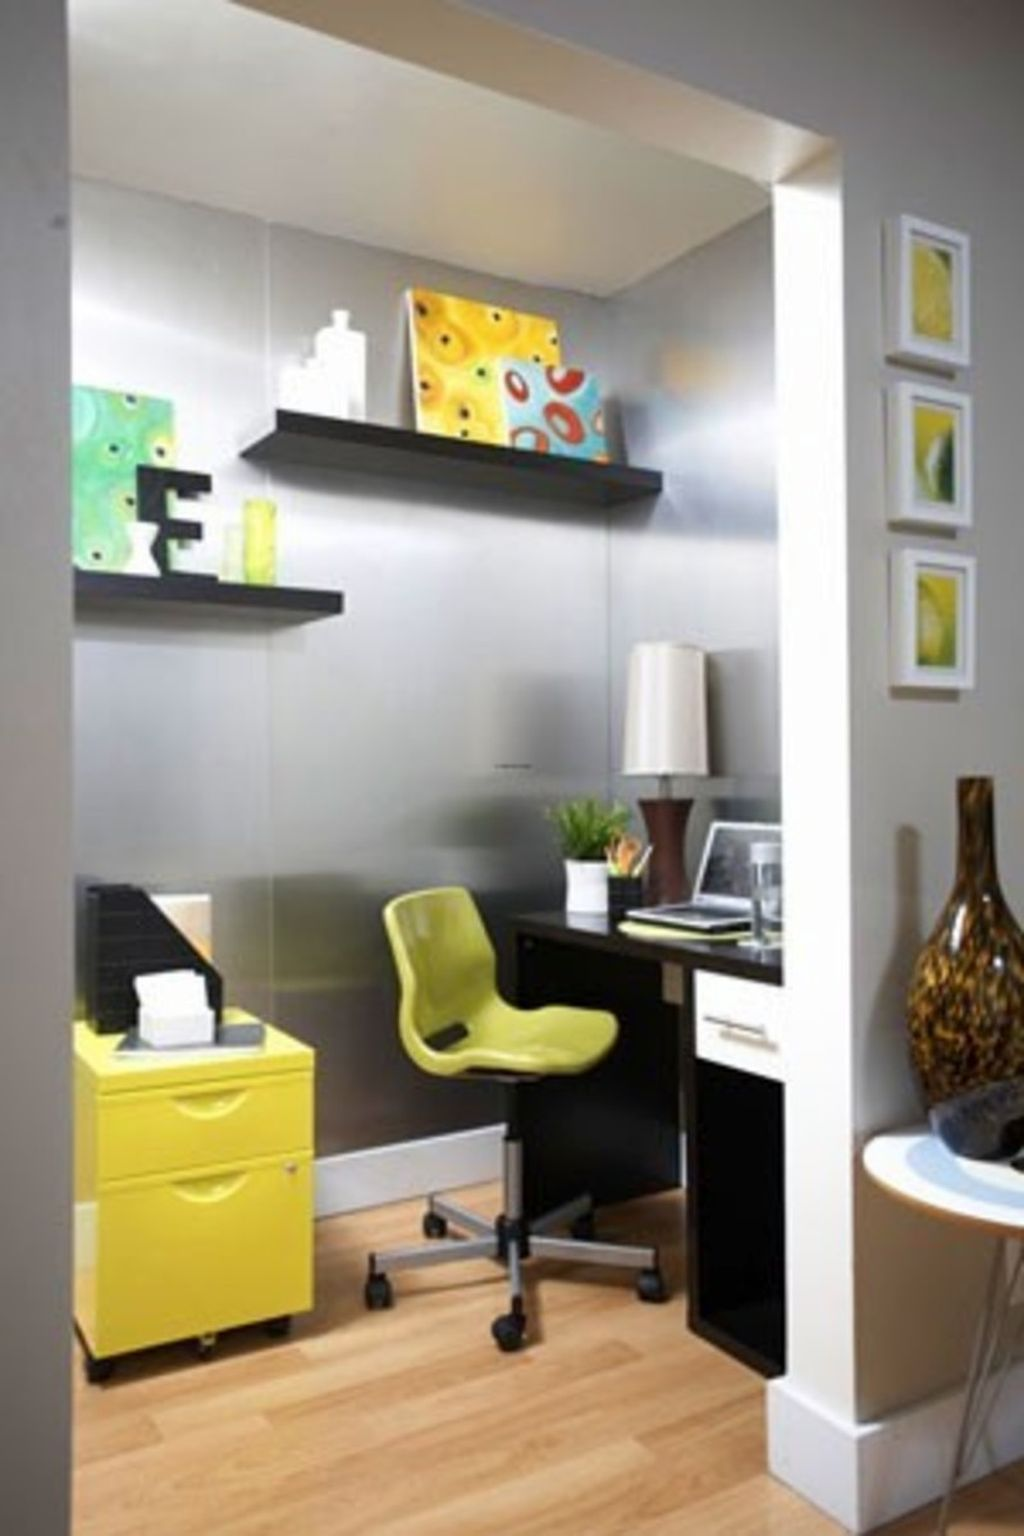 gallery for home office design ideas for small spaces - Small Home Office Design Ideas